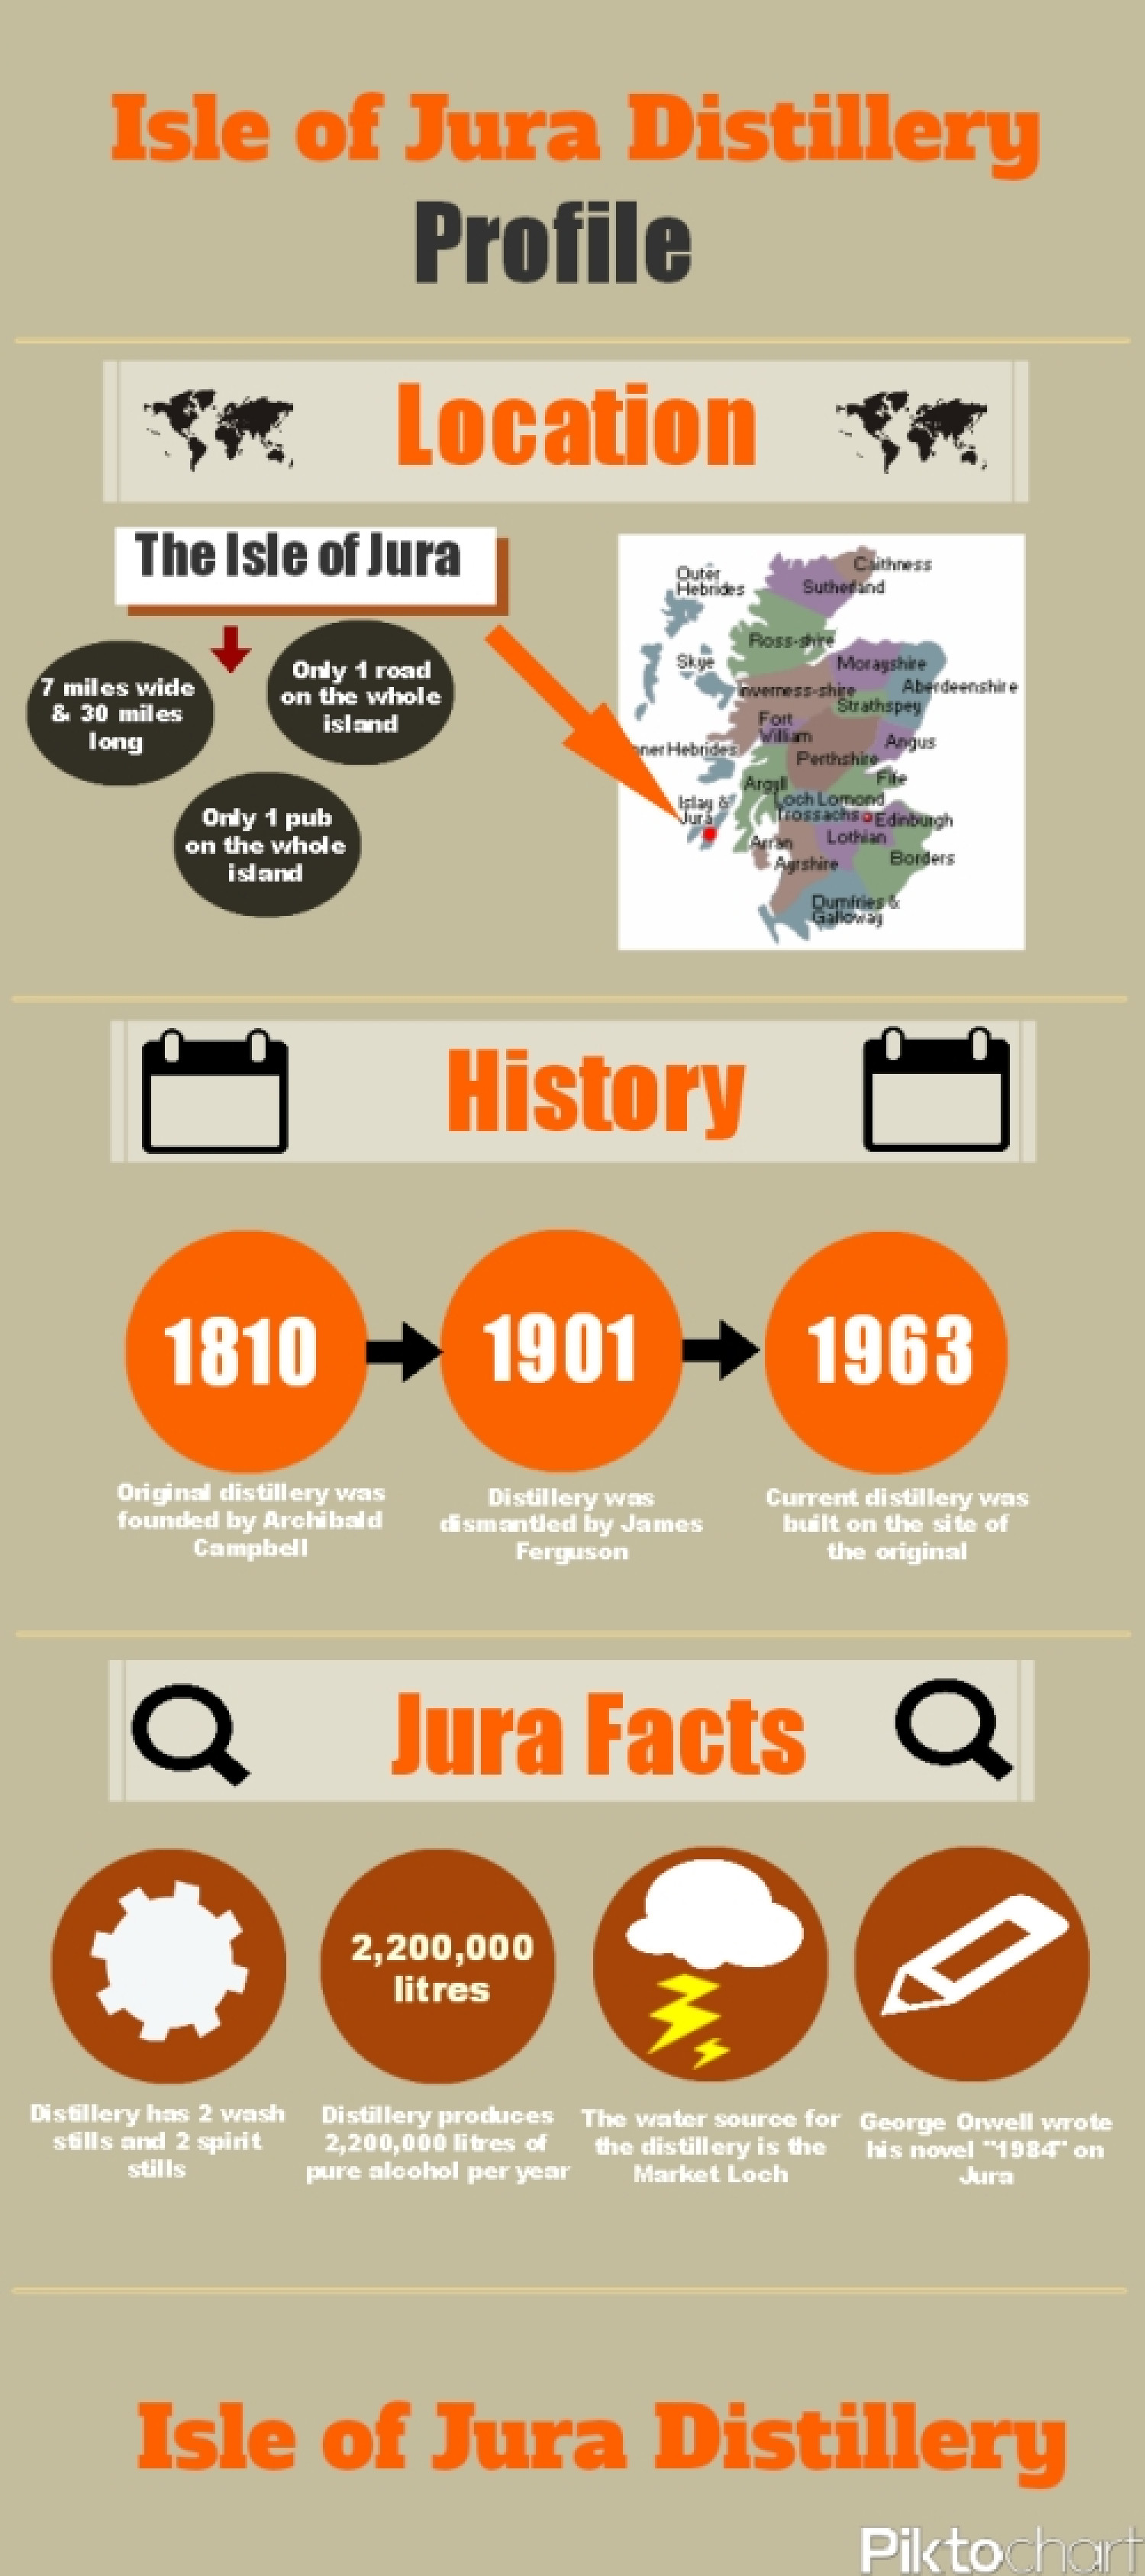 Isle of Jura Distillery Profile Infographic